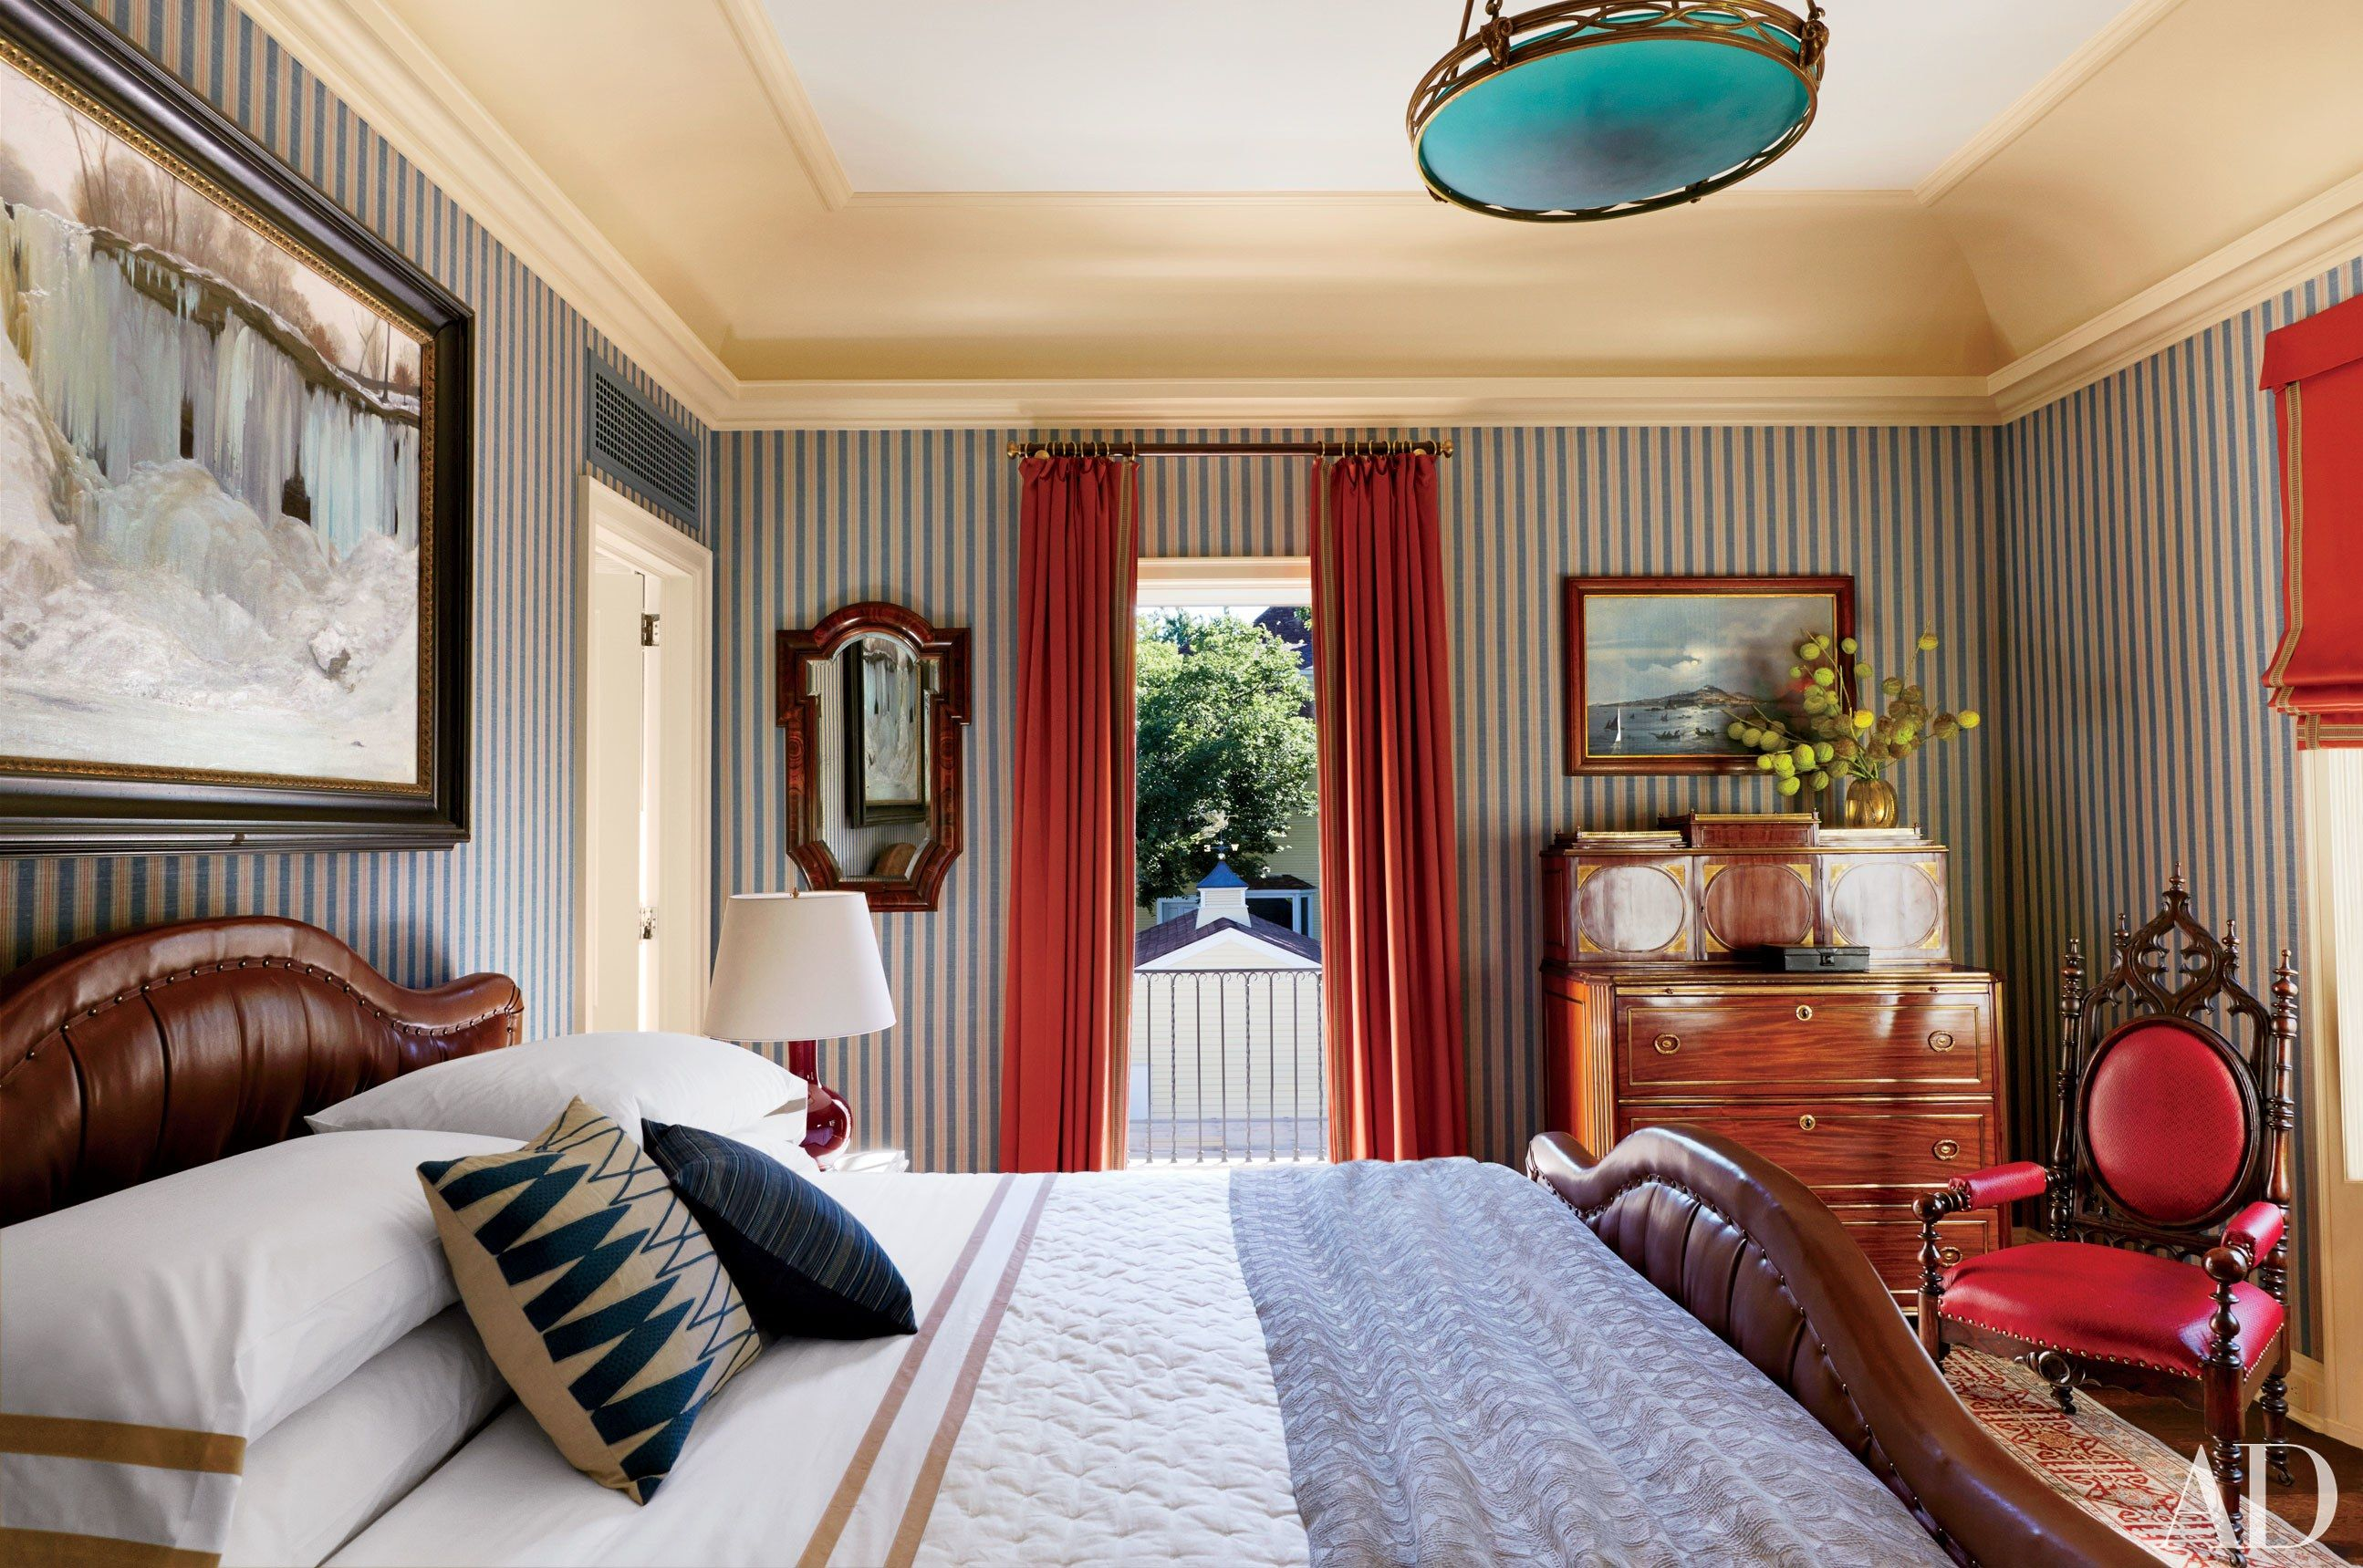 11 Rooms Inspired by Menswear Bedroom decor on a budget